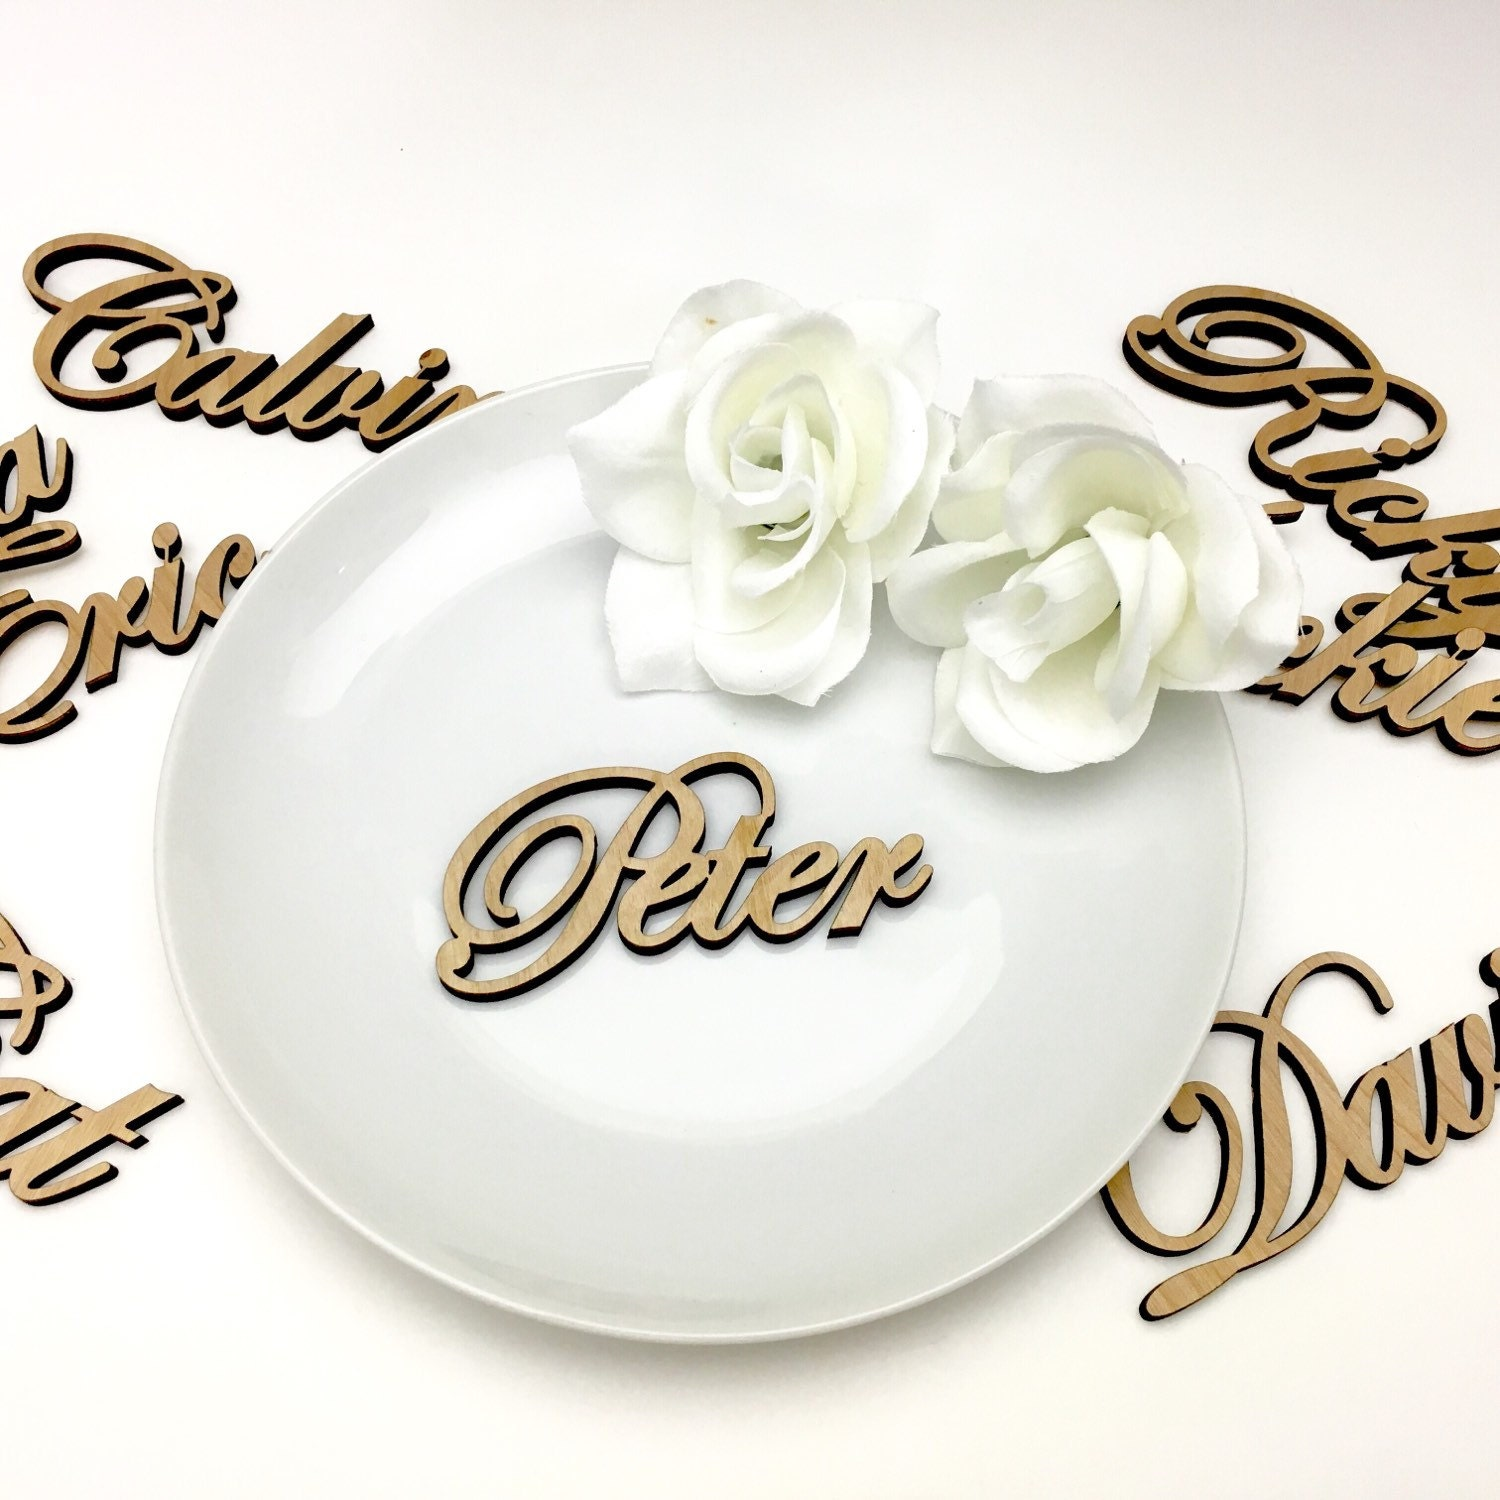 Custom name ornaments - Custom Plate Names Laser Cut Wood Name Place Settings 10 Names For Tables